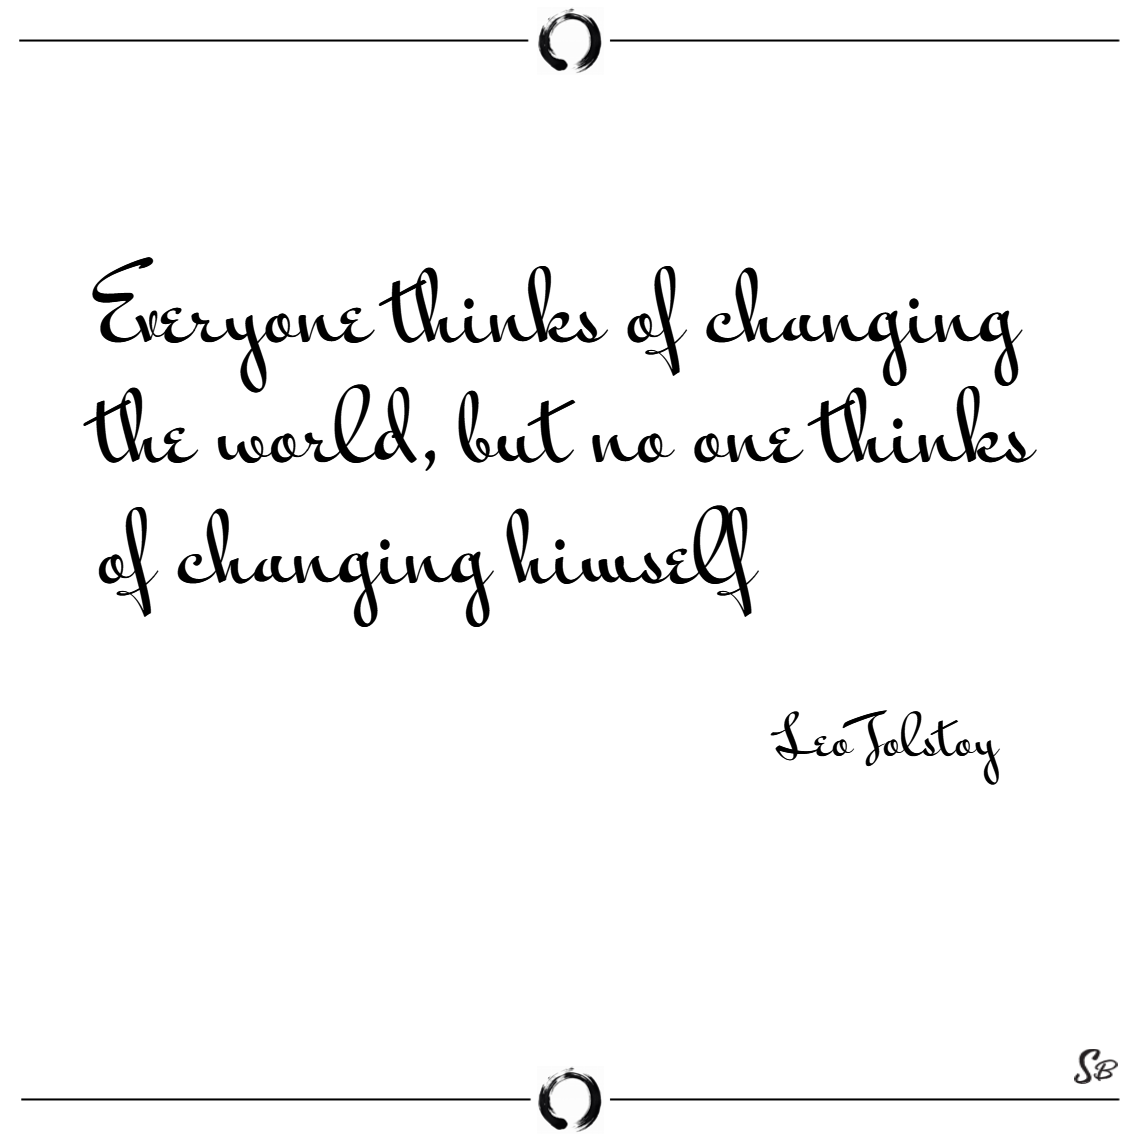 Everyone thinks of changing the world, but no one thinks of changing himself. – leo tolstoy